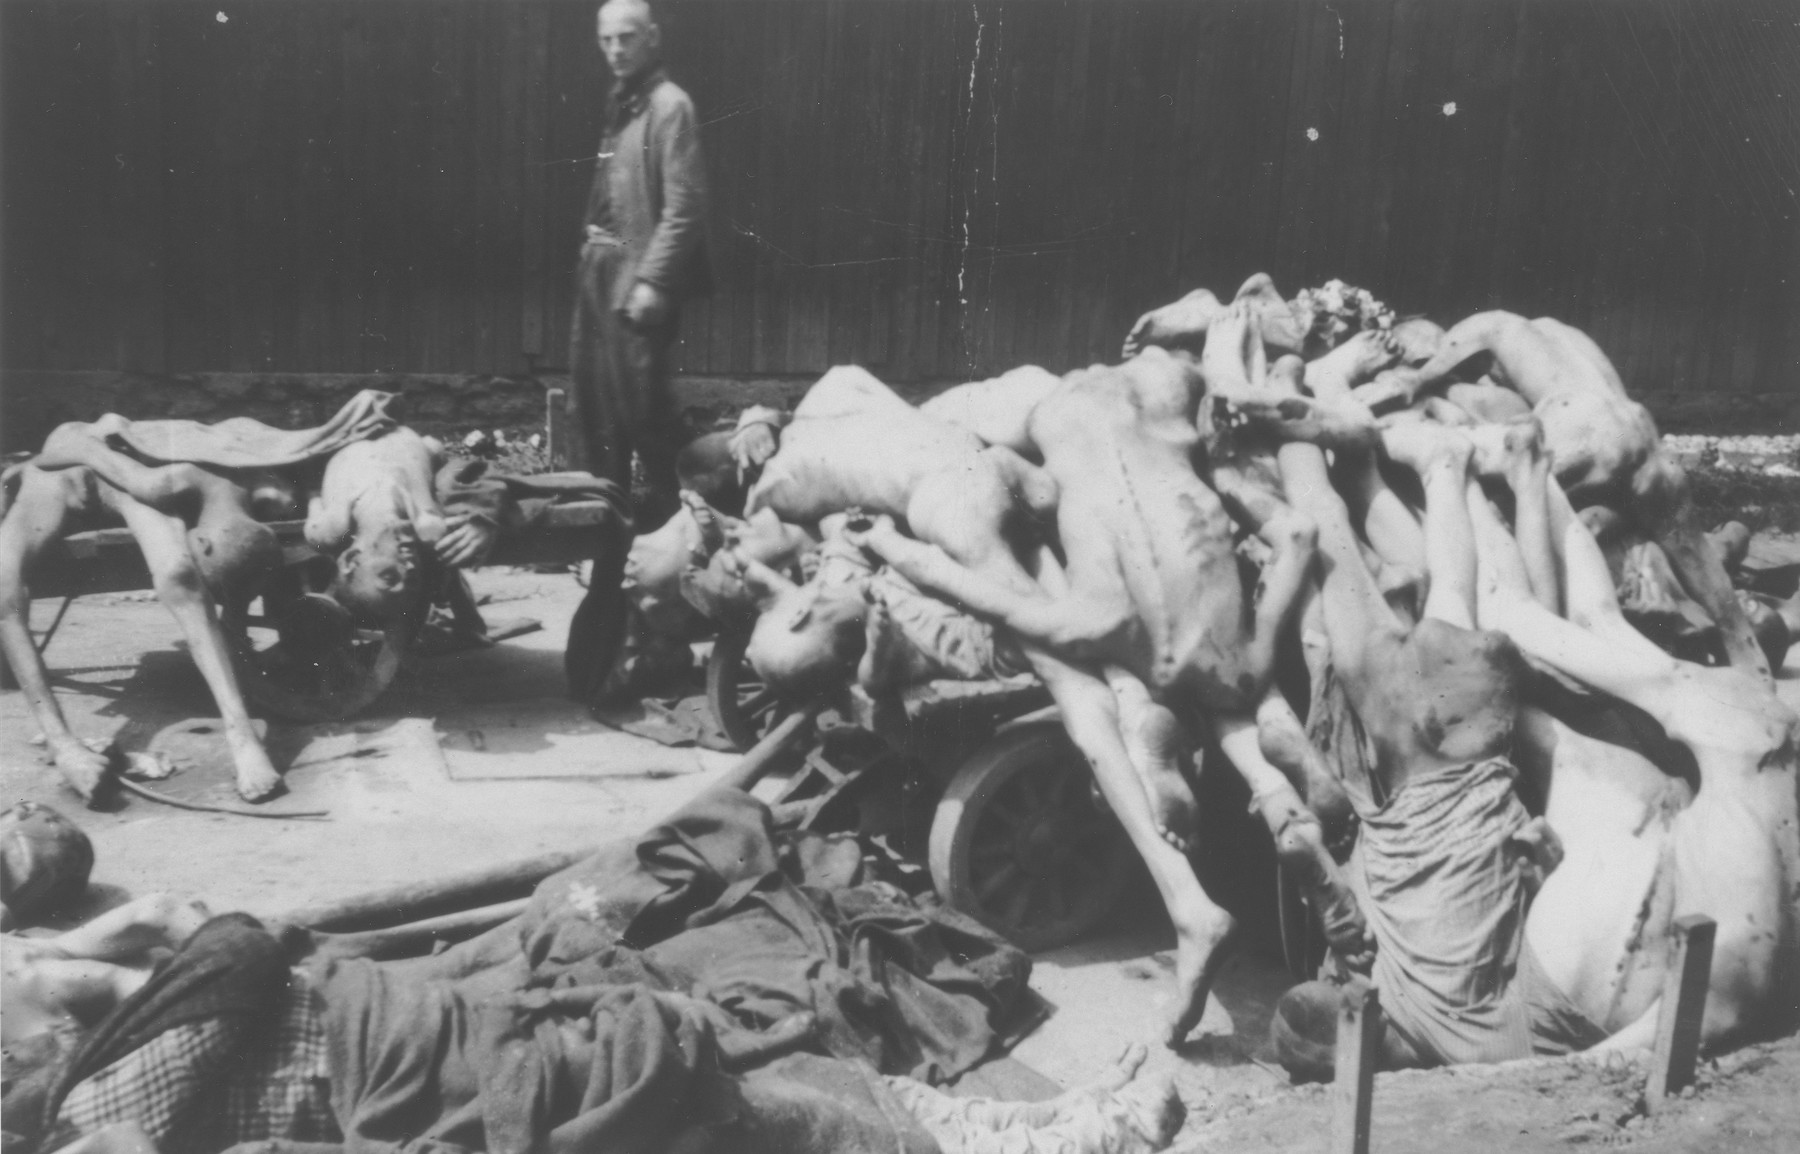 A survivor views piles of corpses that have been stacked on carts and on the ground prior to their burial [probably at the Gusen concentration camp].